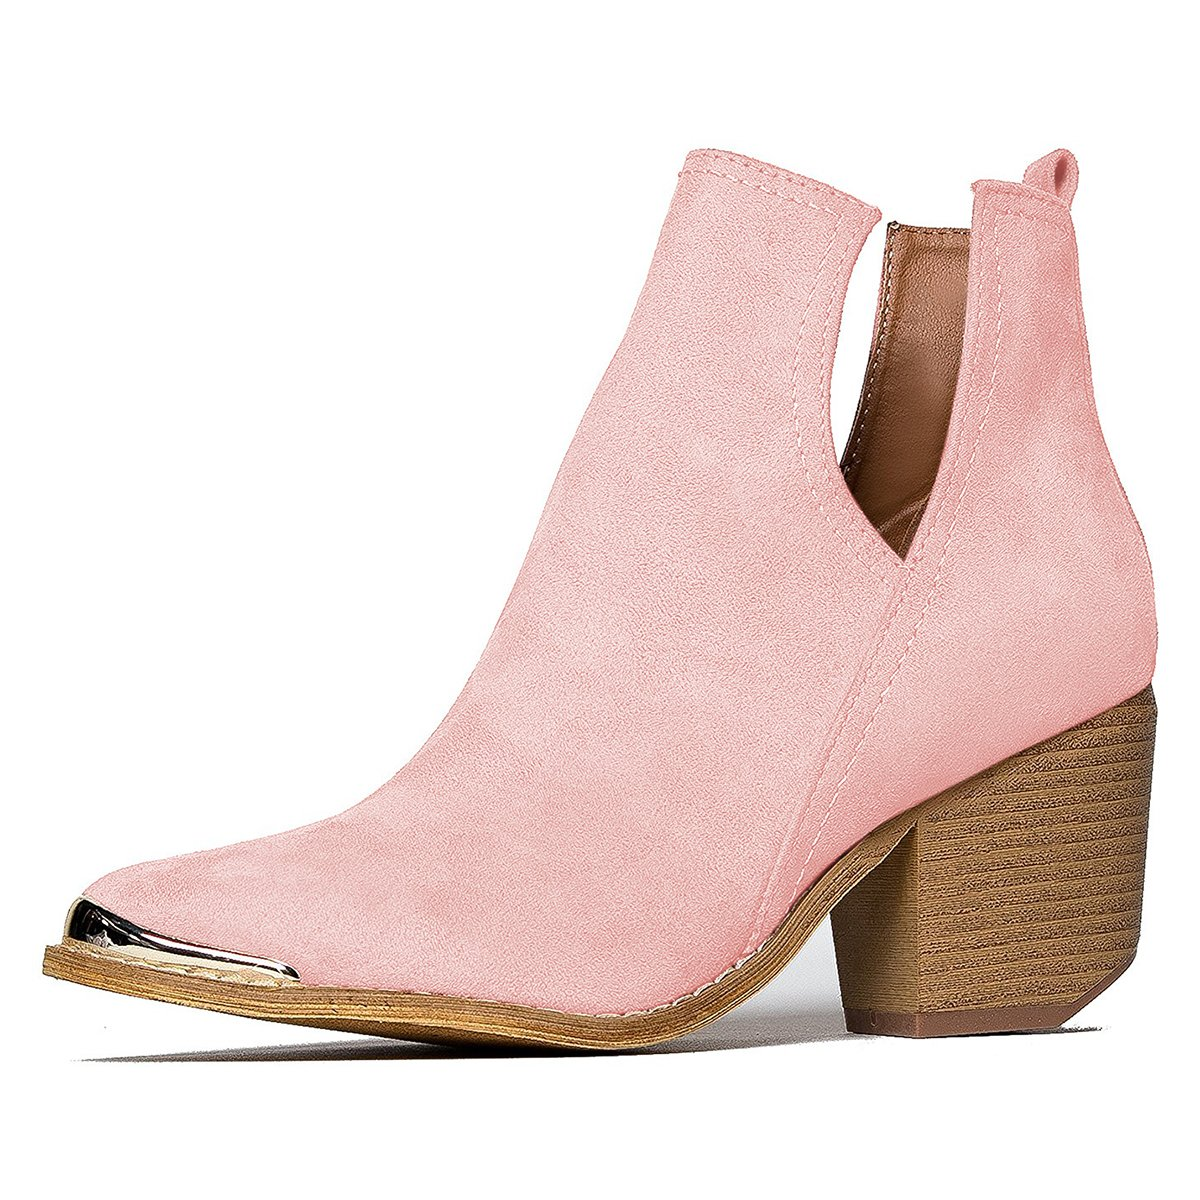 YDN Women Ankle Booties Low Heel Faux Suede Stacked Boots Cut Out Shoes with Metal Toe B079B812DS 10 M US|Pink